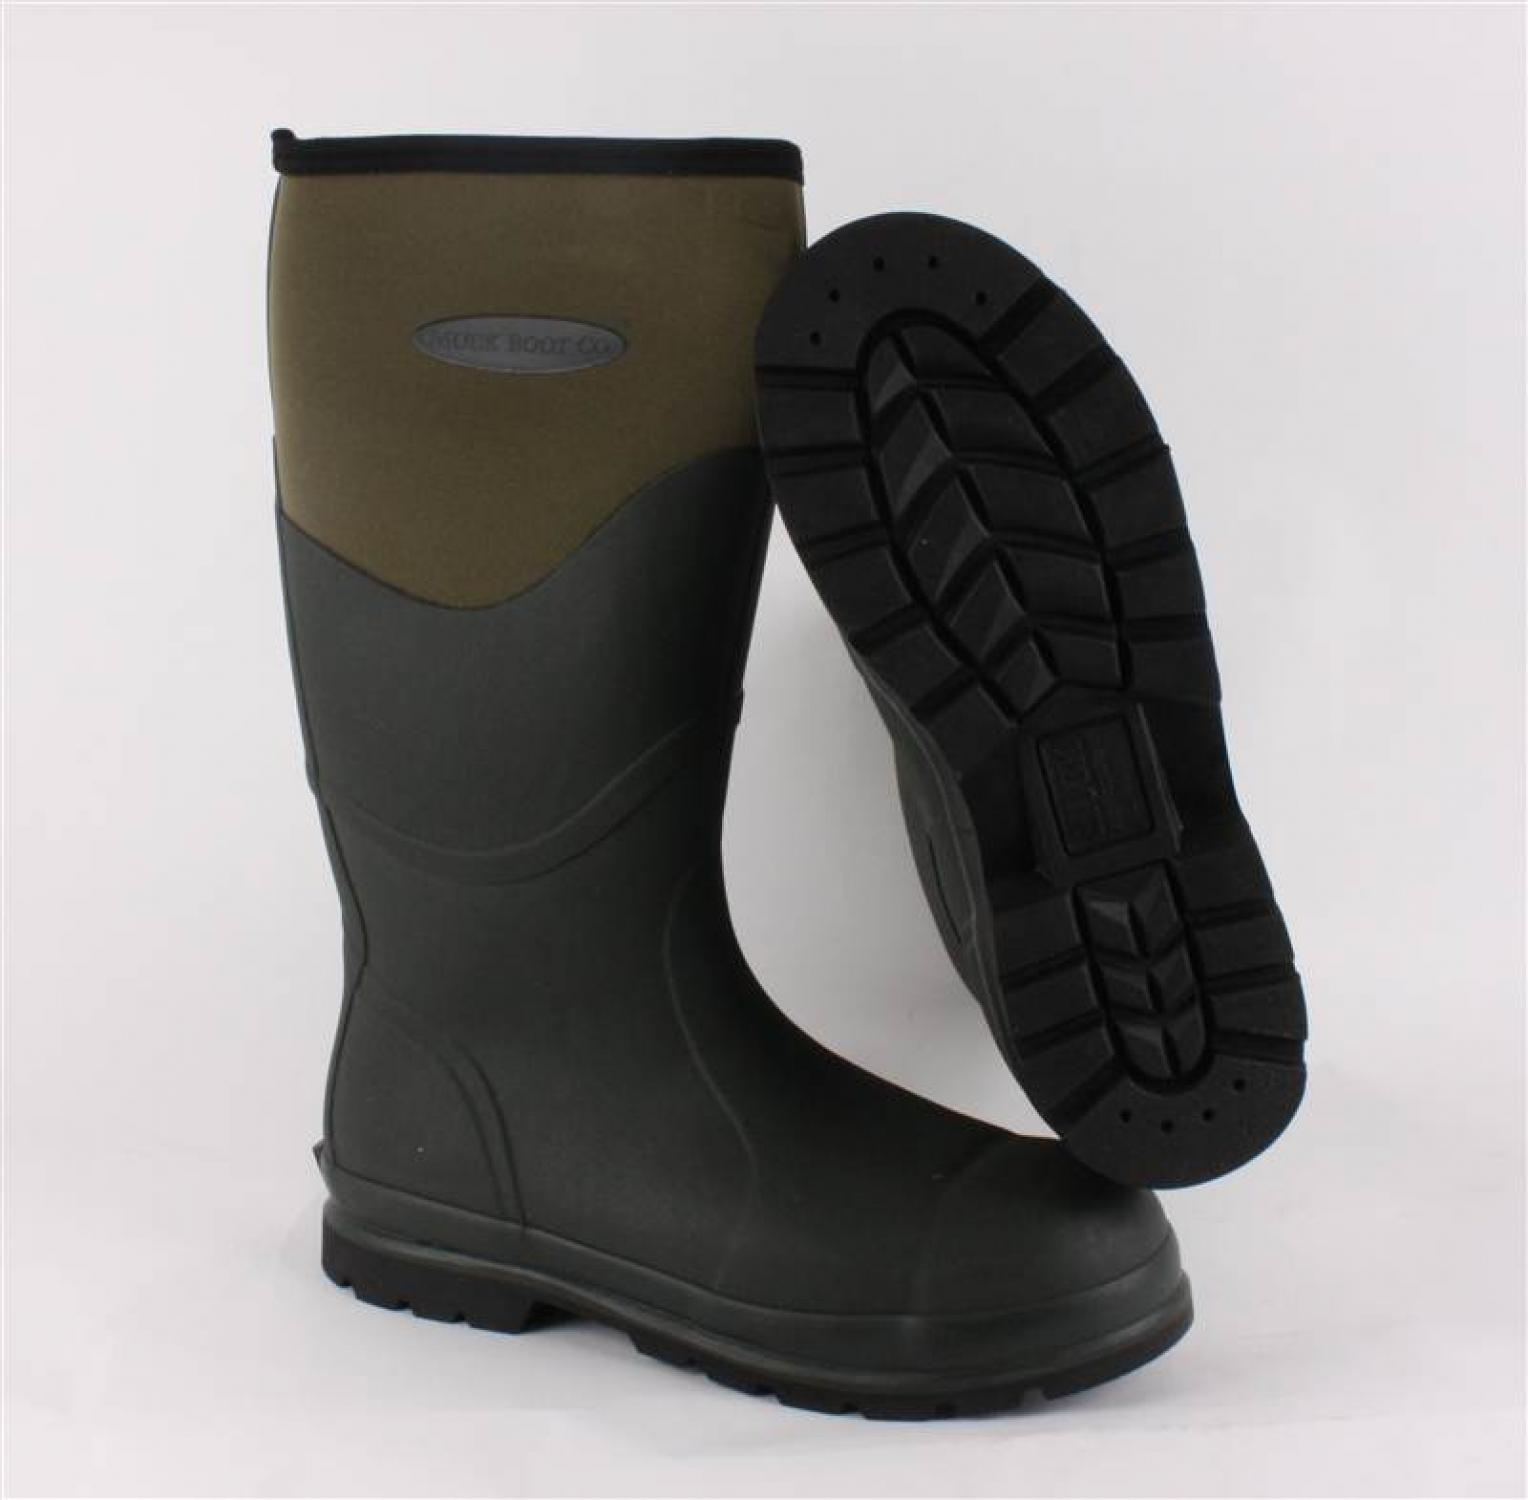 55cb808f330 Chore Steel Toe Safety Muck Boot Green